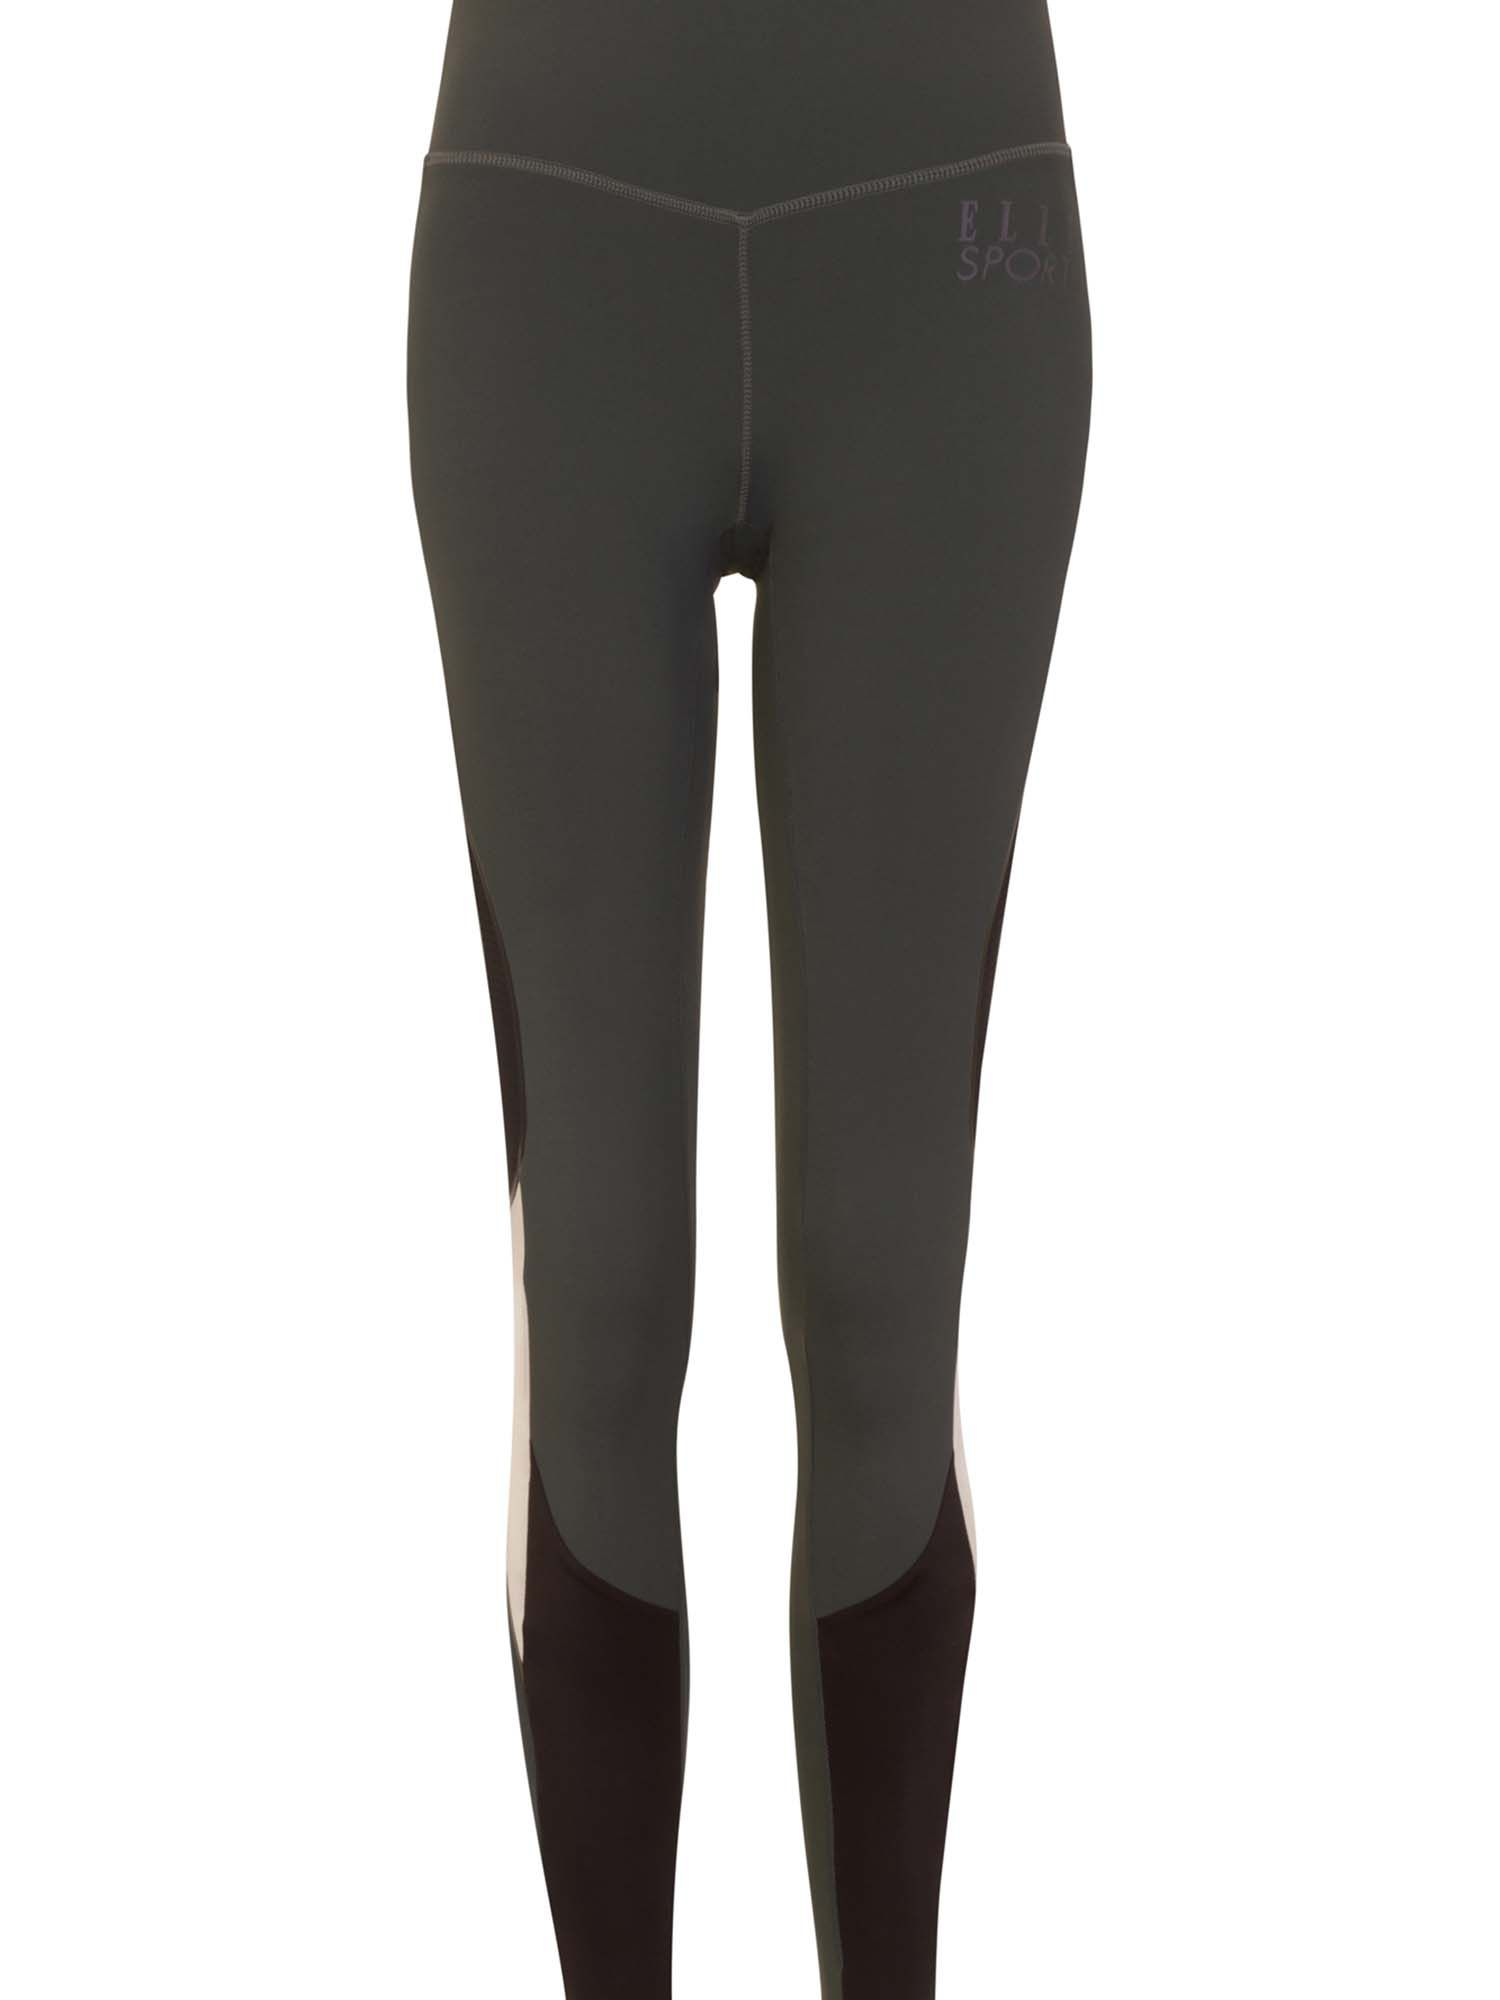 Elle Sport Statement Contour Panelled Workout Tight, Dary Grey Marl